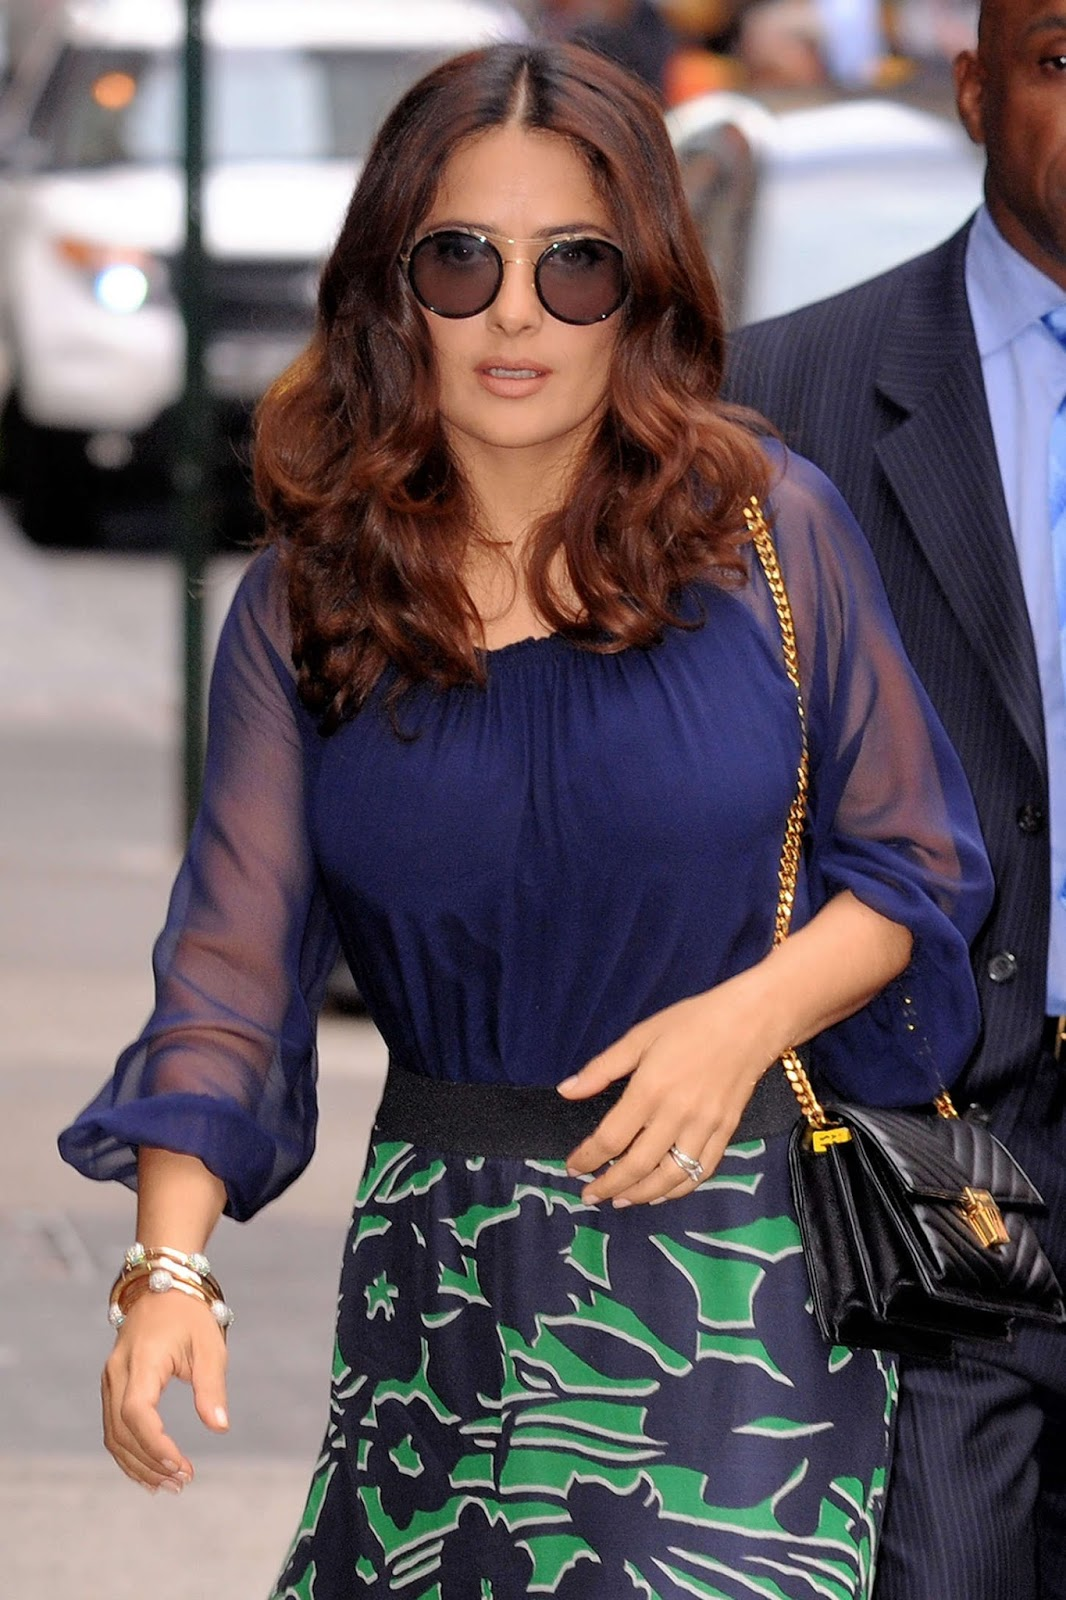 ... : Salma Hayek – Arrives at 'Good Morning America' in NYC